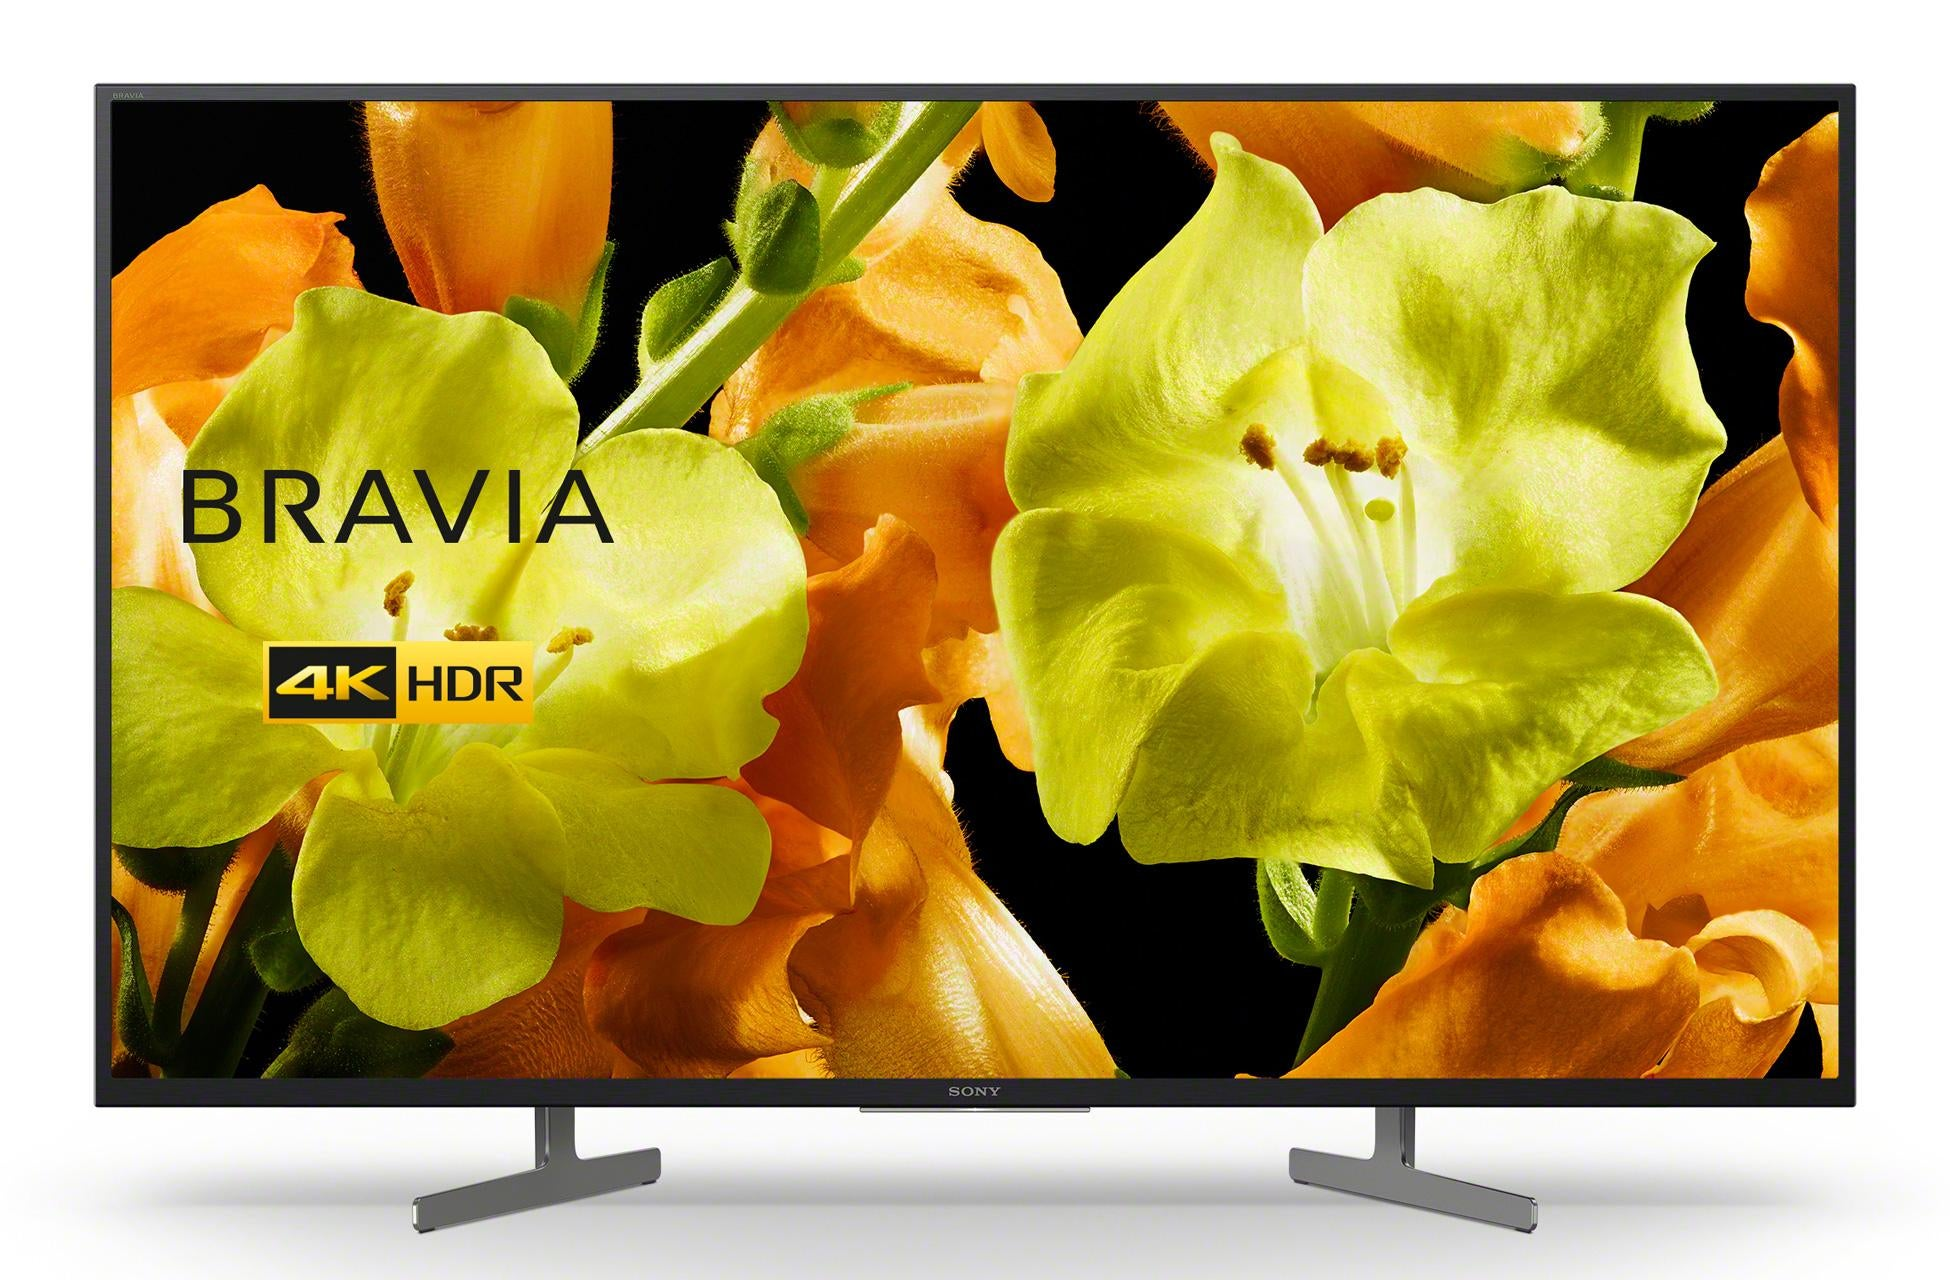 Televisions & Recorders Sony XG81 49in 4K UHD HDR Smart LED TV